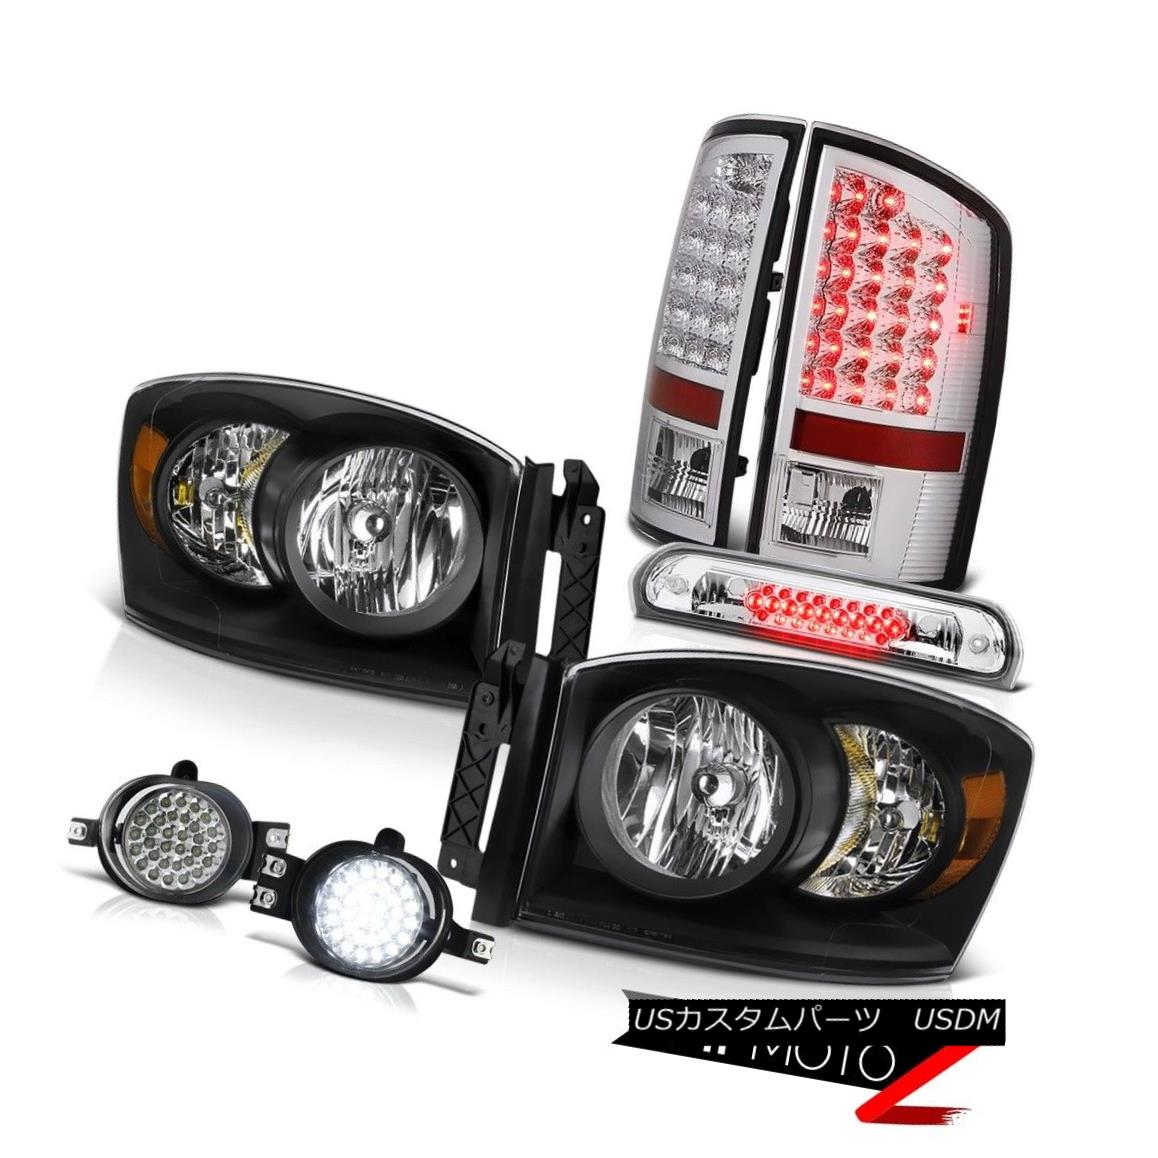 テールライト Black Headlights LED Brake Tail Lights D.R.L Fog Third Cargo 2006 Dodge Ram V8 ブラックヘッドライトLEDブレーキテールライトD.R.L Fog Third Cargo 2006 Dodge Ram V8